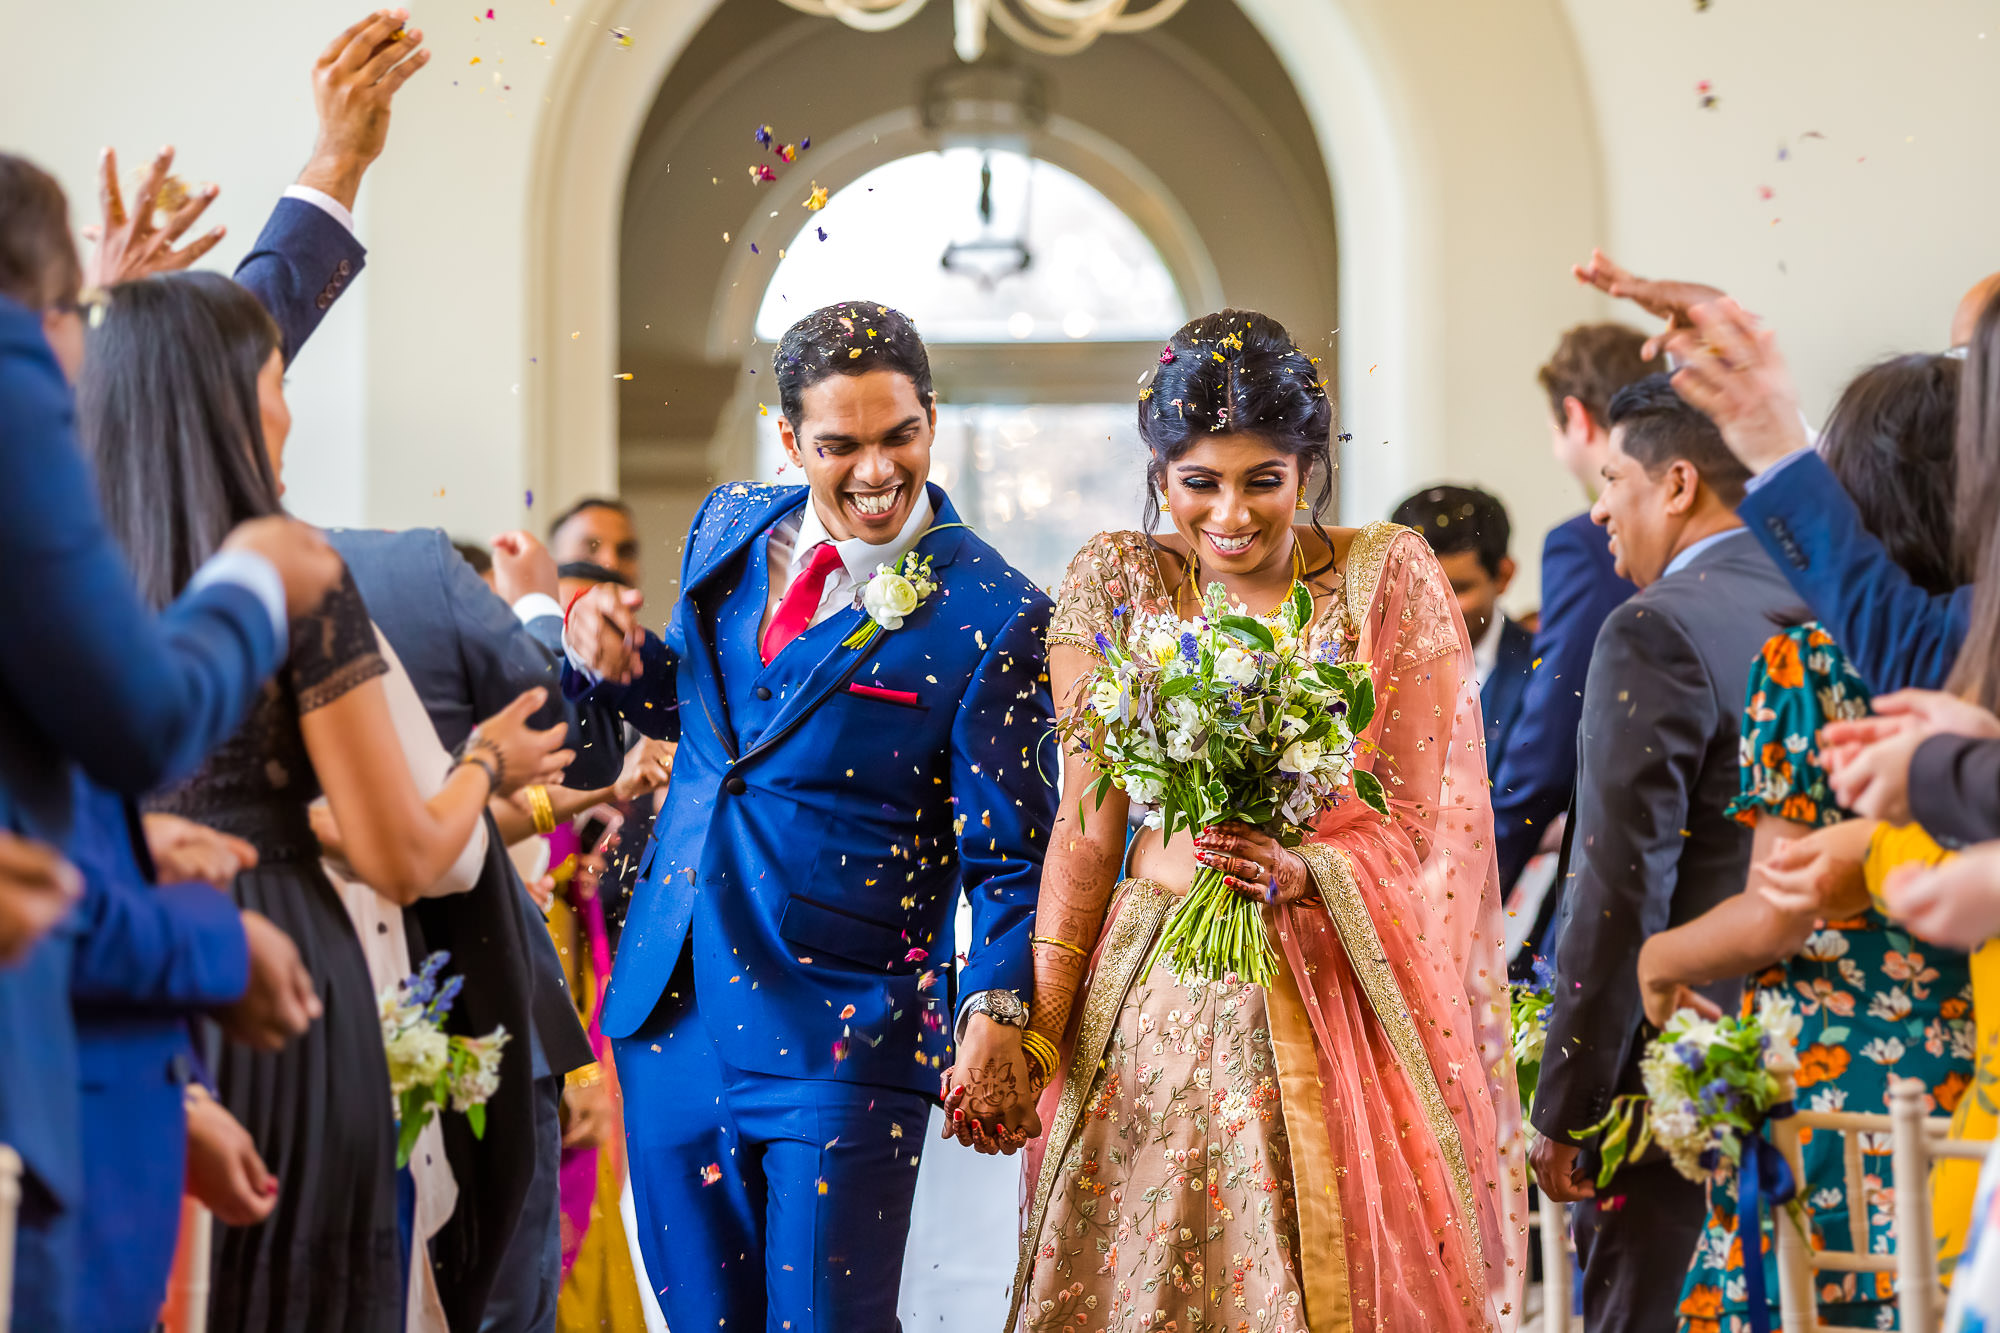 asian-wedding-hindu-tamil-photographer-heythorpe-oxford-0235.jpg